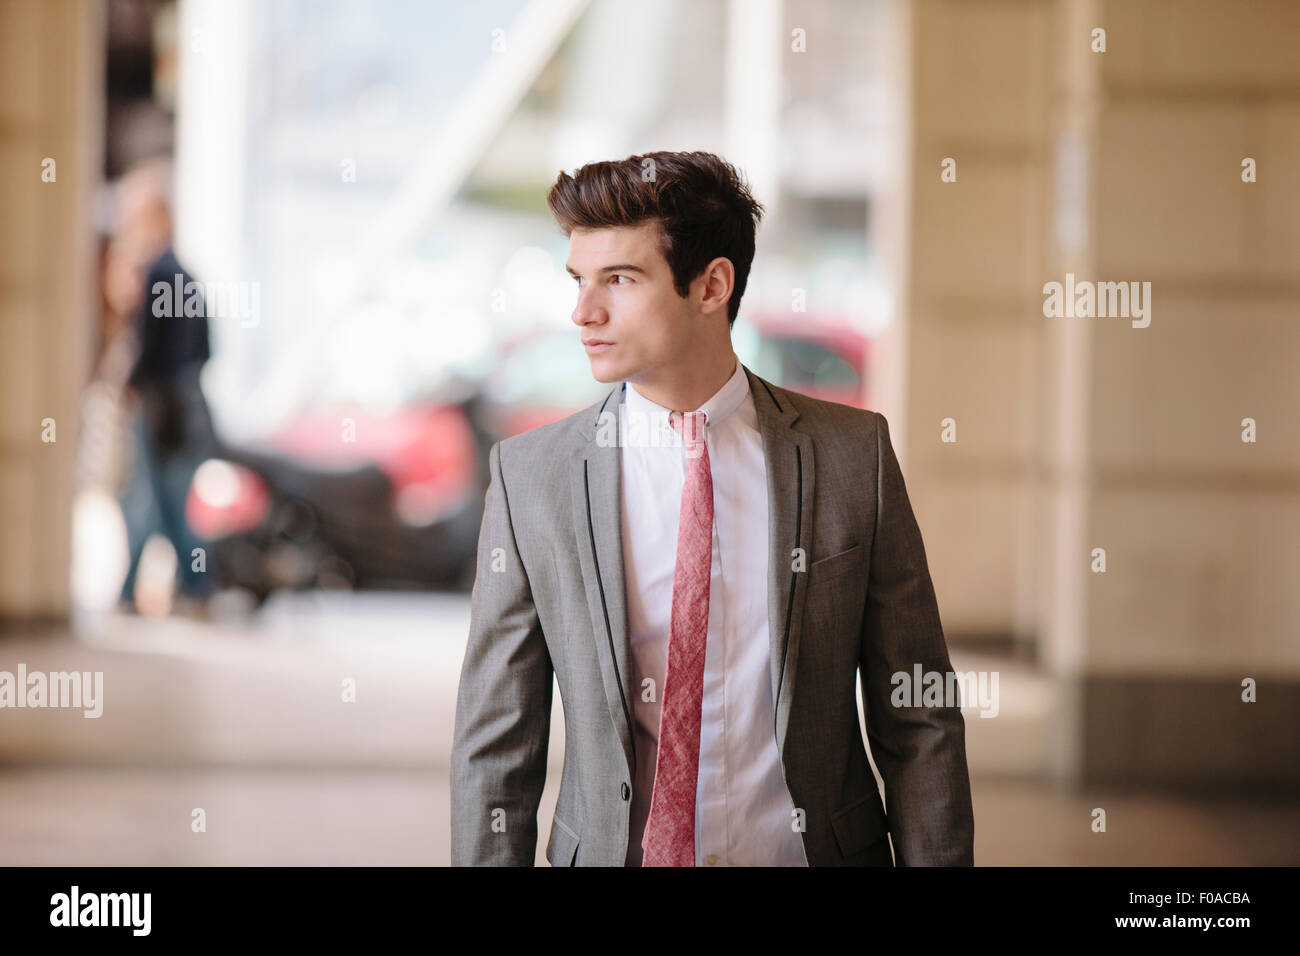 Confident young city businessman walking on sidewalk - Stock Image